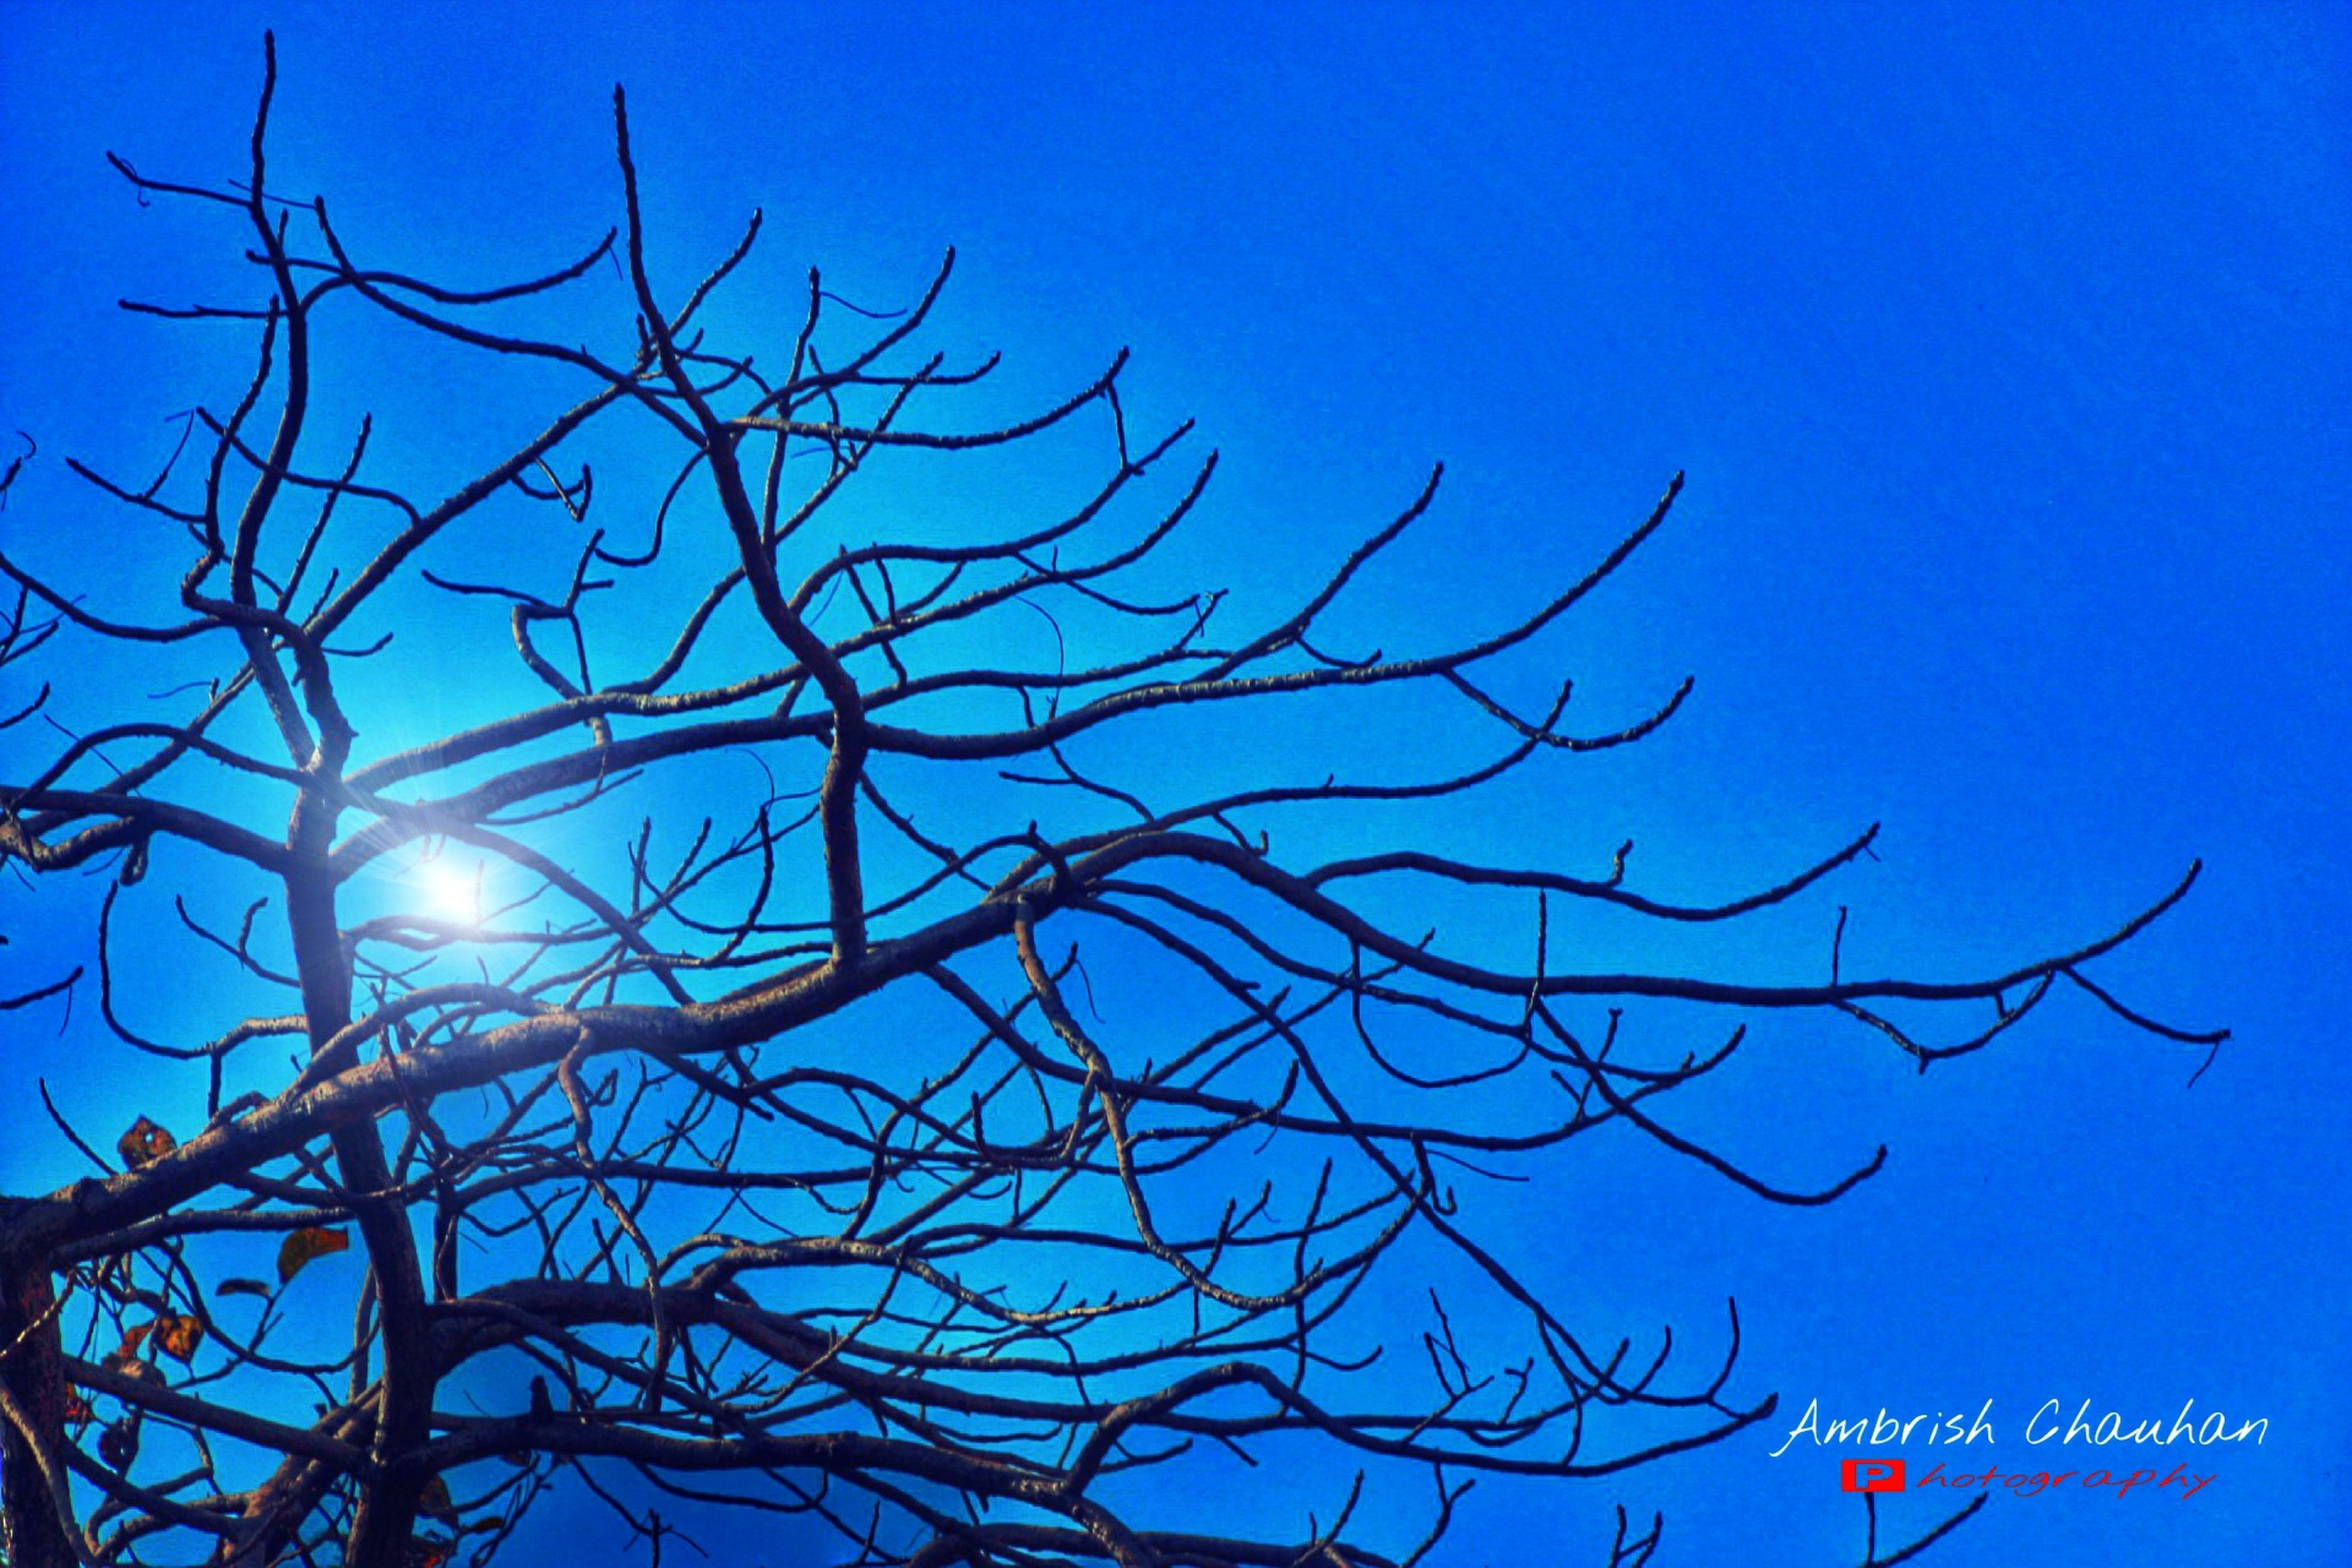 bare tree, clear sky, blue, low angle view, branch, tree, nature, copy space, tranquility, beauty in nature, no people, outdoors, dead plant, sky, day, silhouette, scenics, dried plant, dusk, sunlight